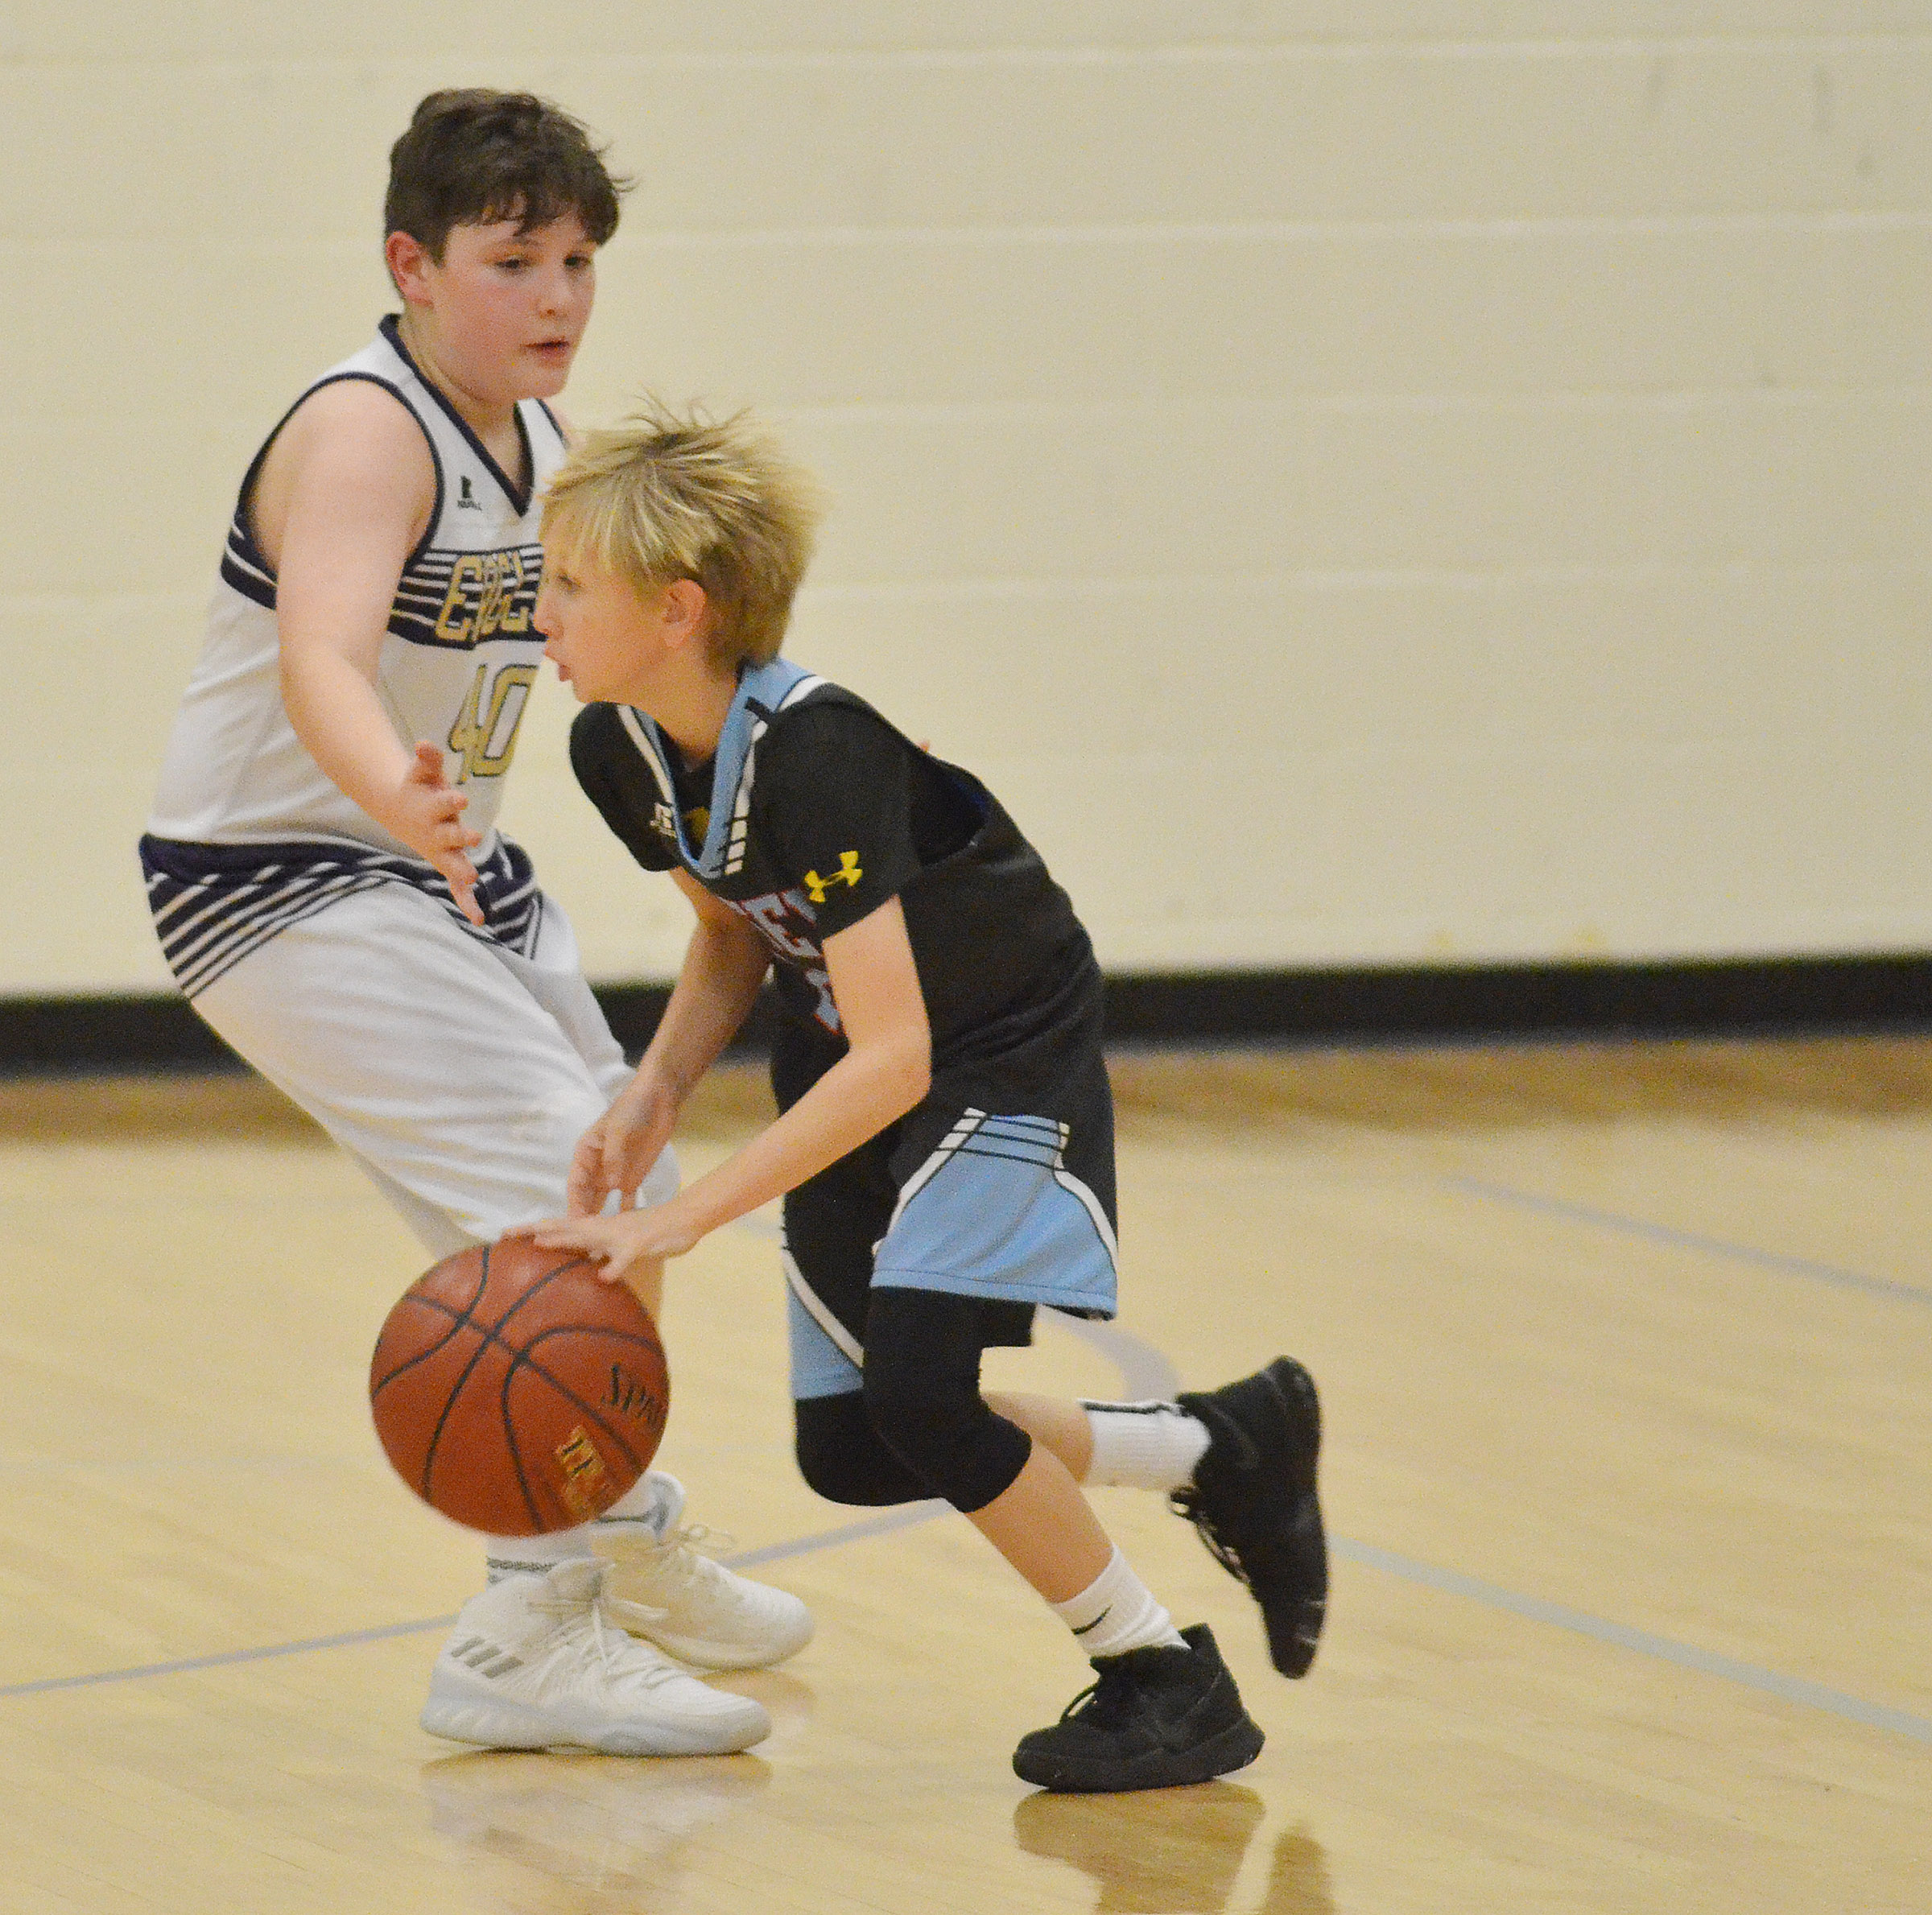 Campbellsville Elementary School fifth-grader Andrew Mardis plays defense.